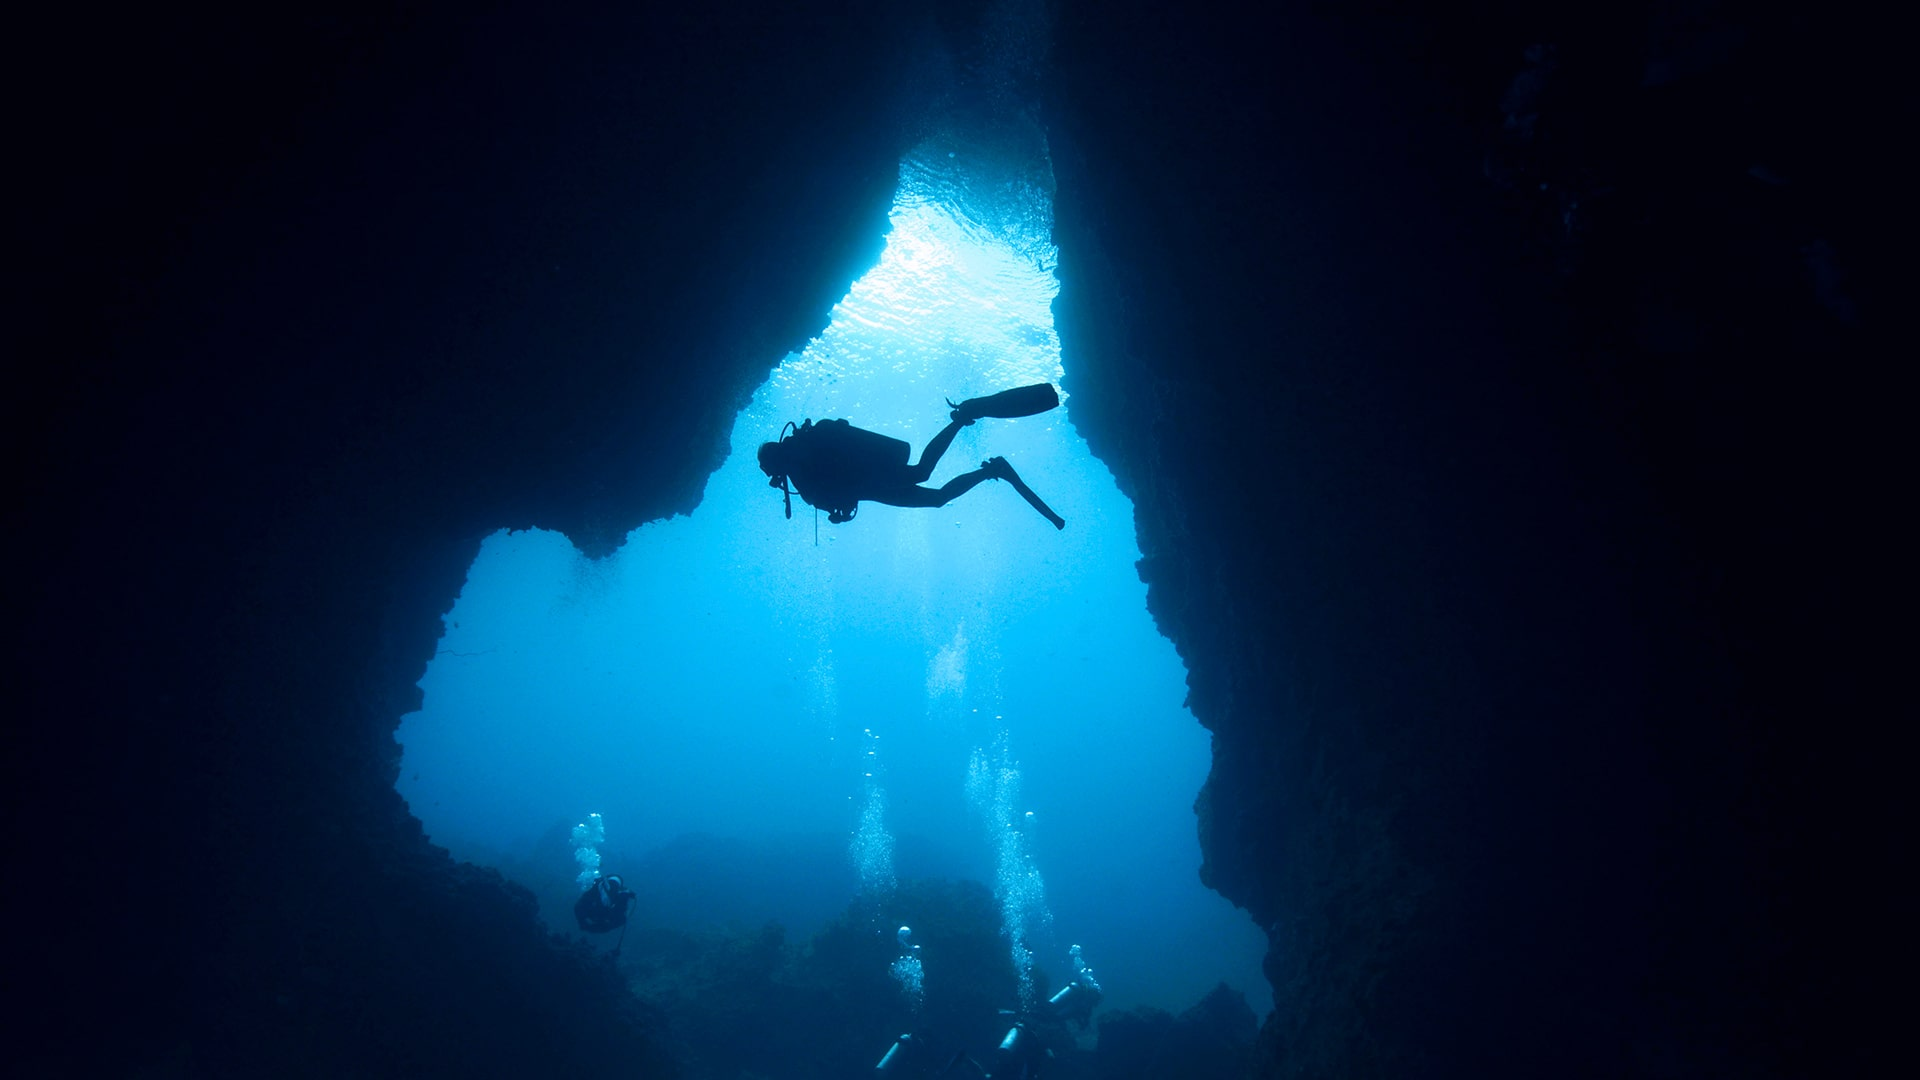 Introductory Cave Diver